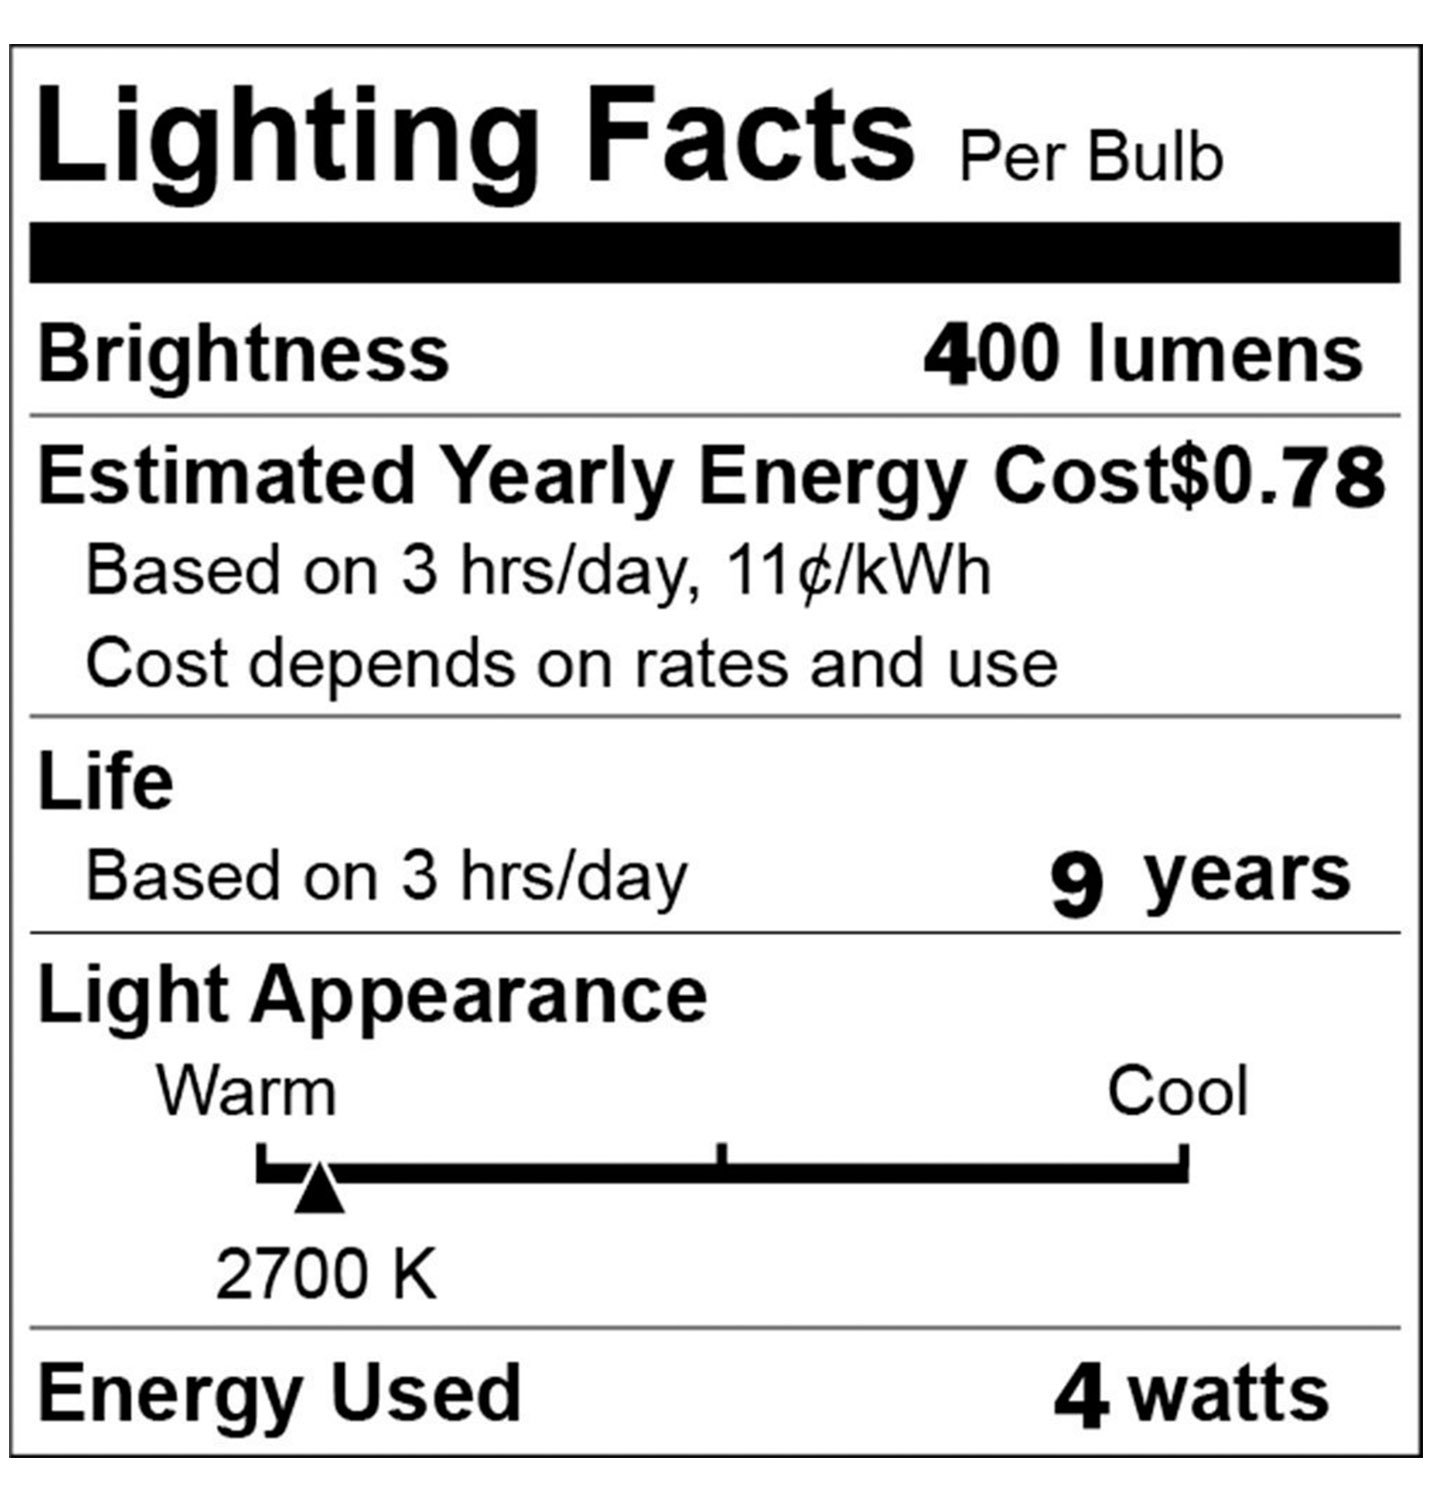 Yiiyaa Candelabra LED Bulb Dimmable E14 Base,4W=40W Equivalent 2700K Antique Patio Wall Ceiling Festival Bar Decoration LED Chandelier Lights Sharp Tail - 5Pack [Energy Class A++]